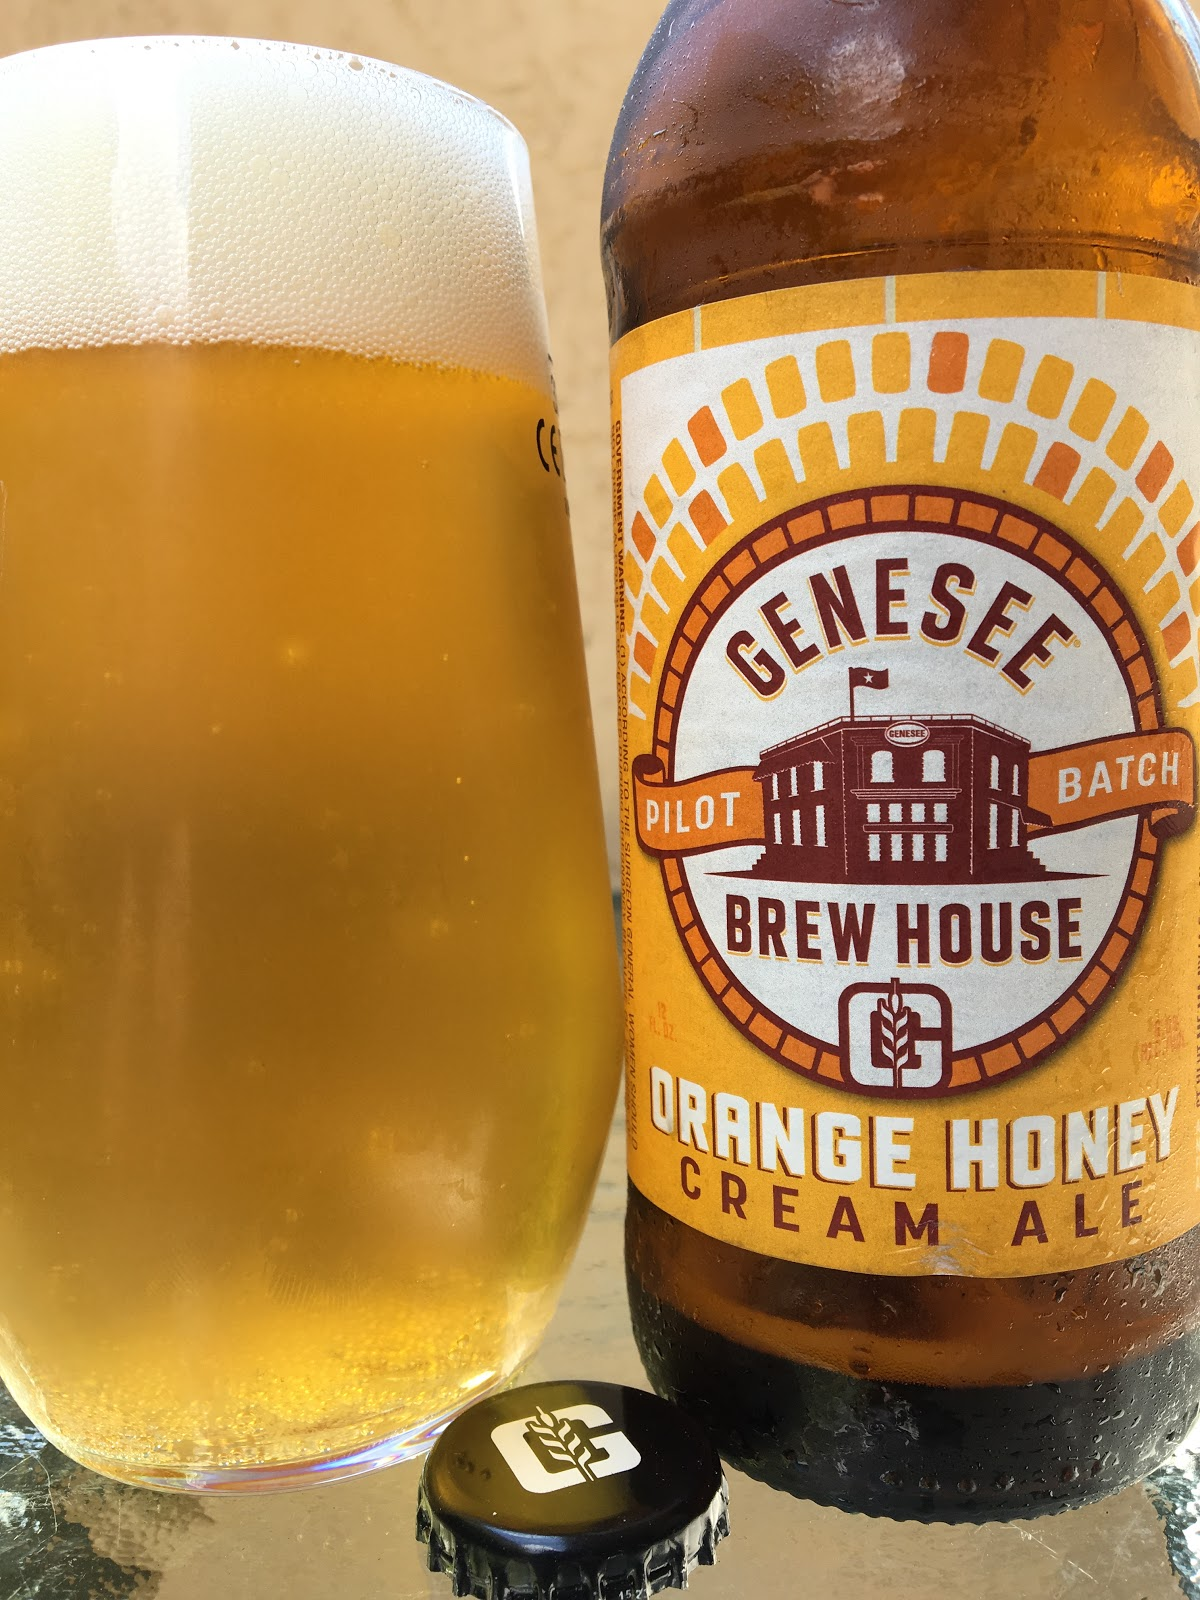 daily beer review: genesee brew house orange honey cream ale